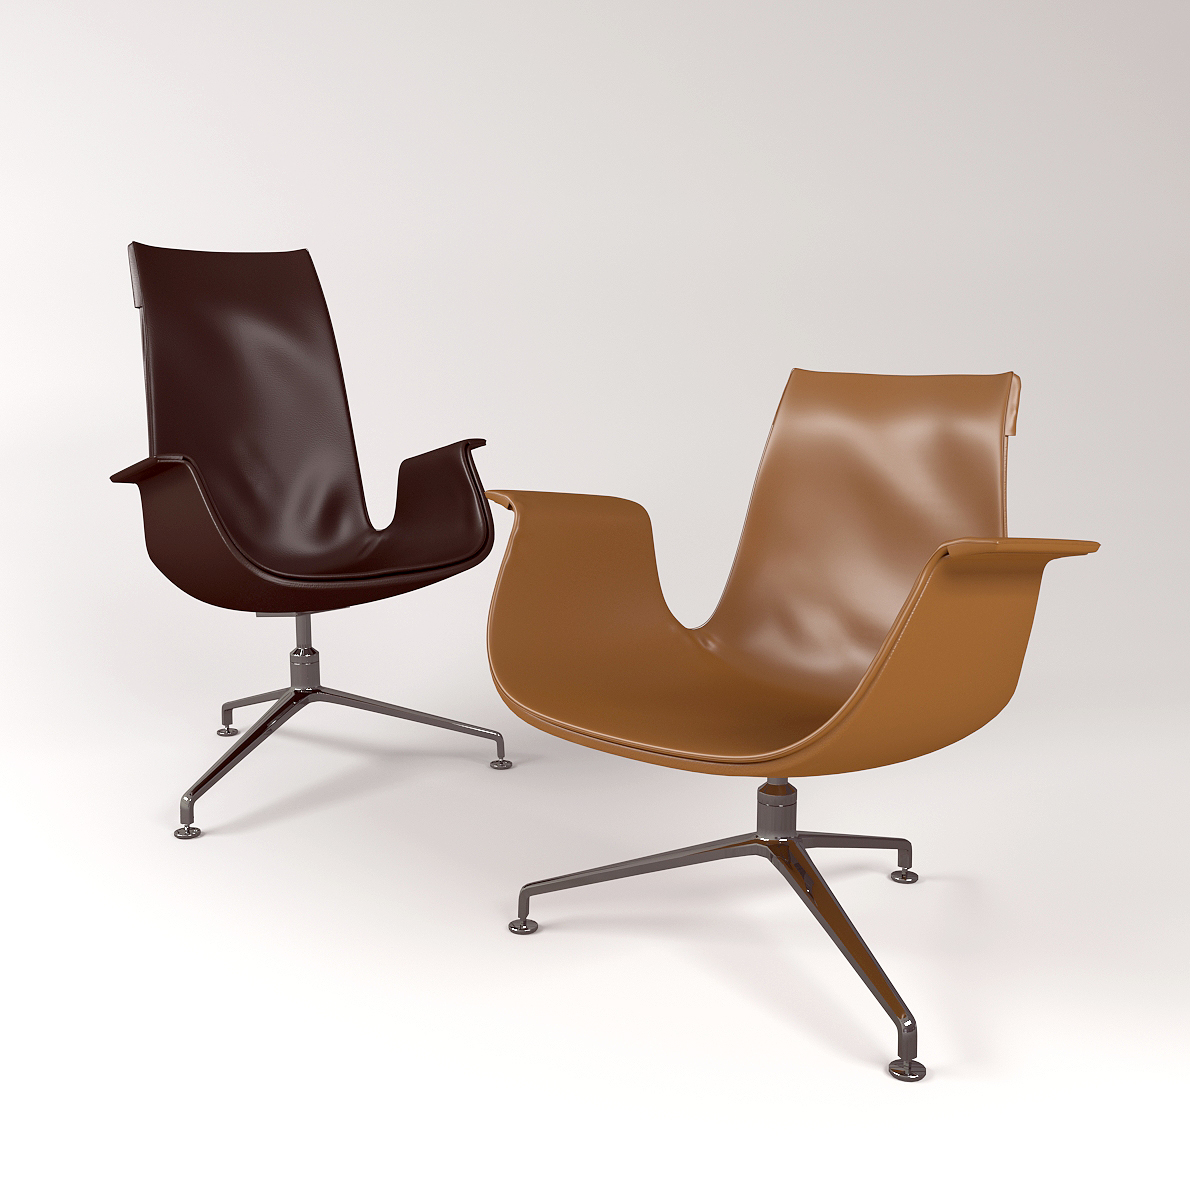 Chair Fk Lounge From Walter Knoll 3d Realistic Model